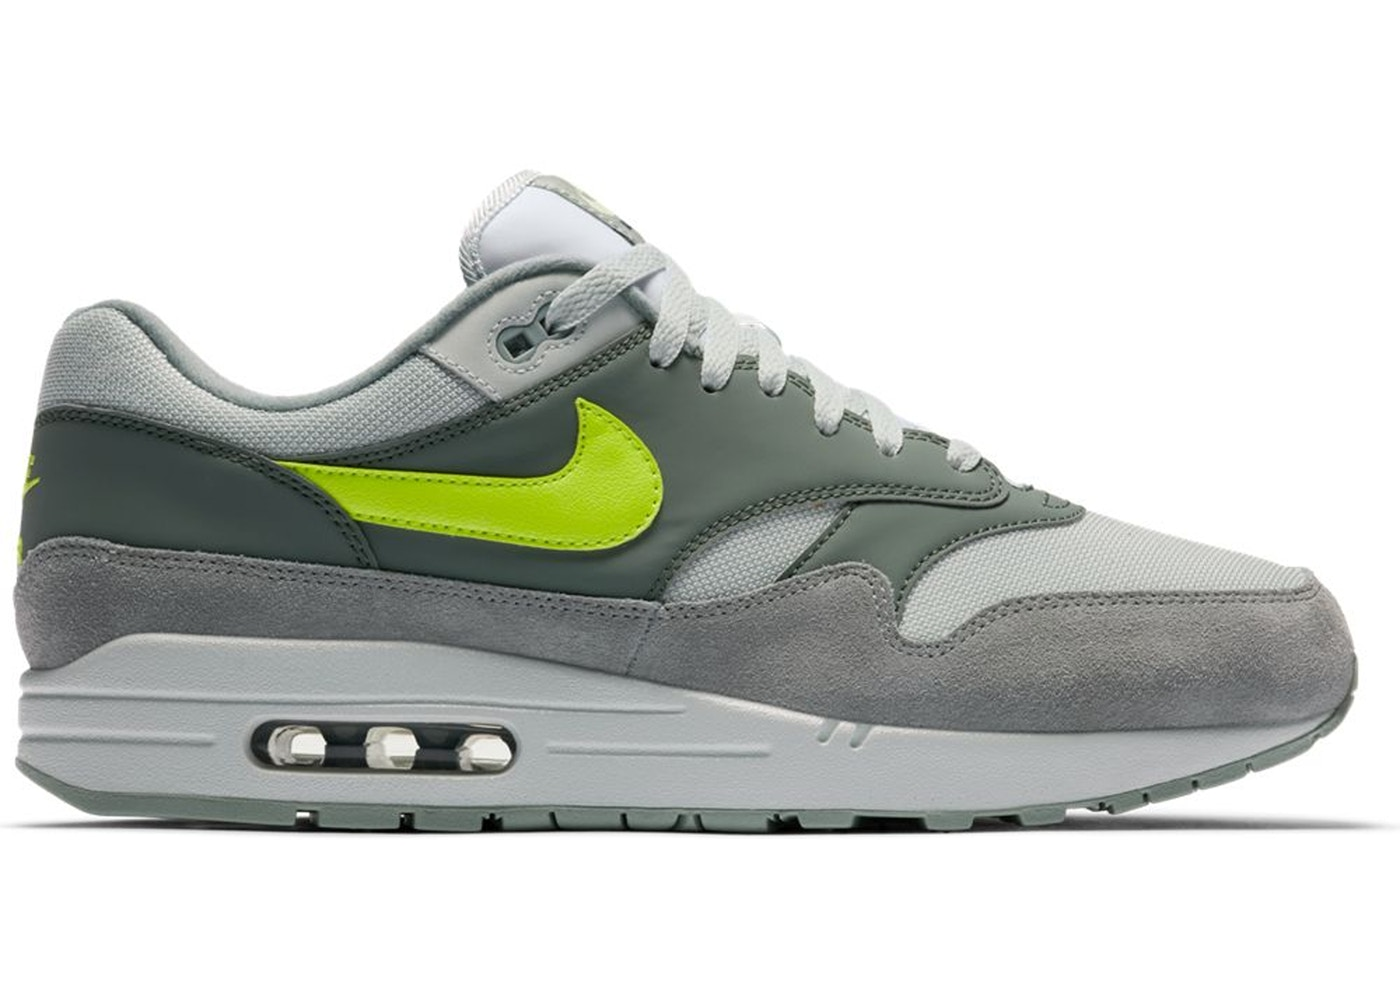 Nike Air Max 1 in Grey & Volt | HYPEBEAST